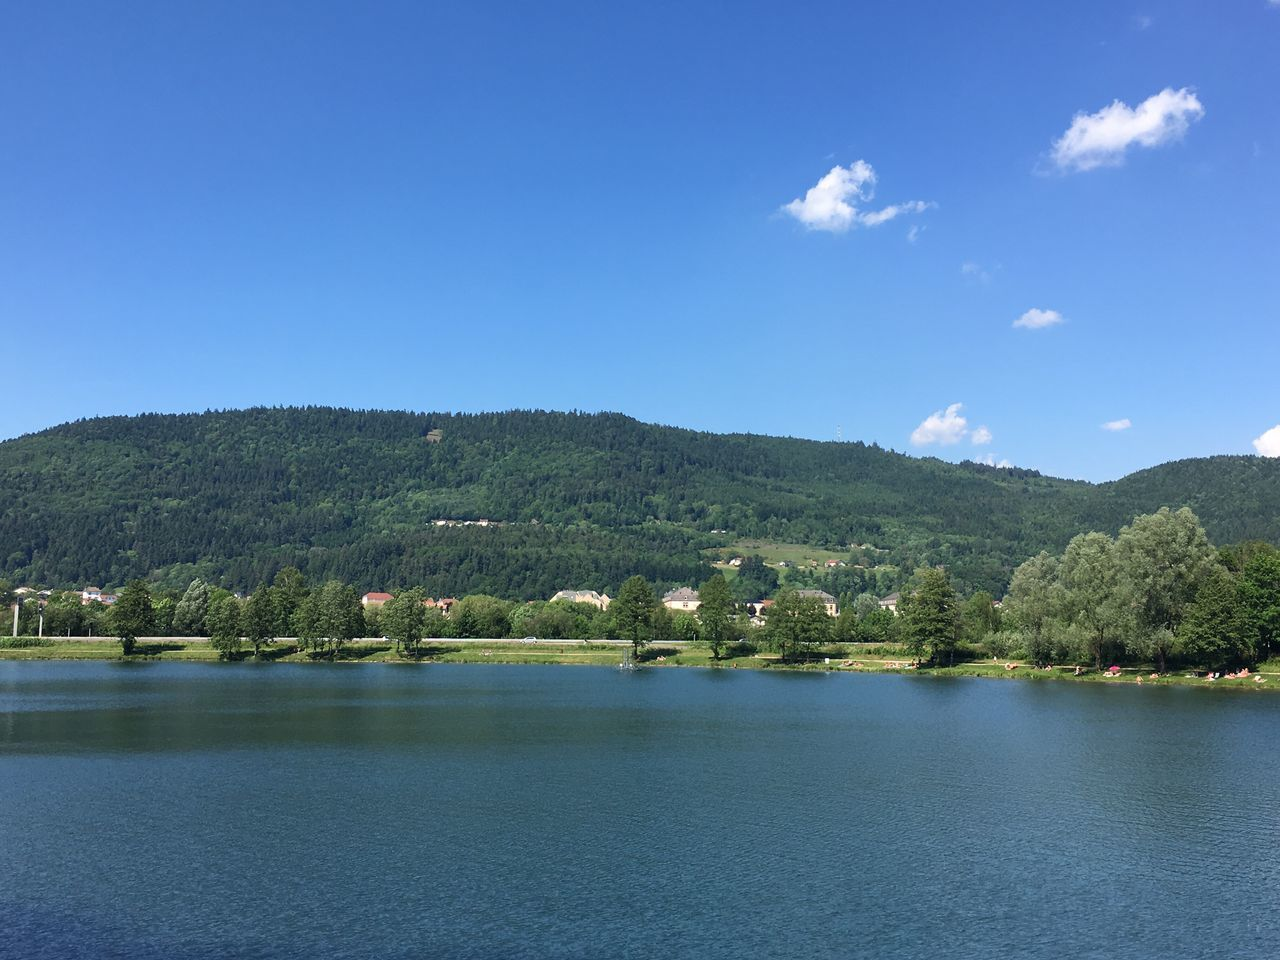 nature, water, blue, no people, tranquility, beauty in nature, waterfront, mountain, lake, scenics, tree, outdoors, sky, day